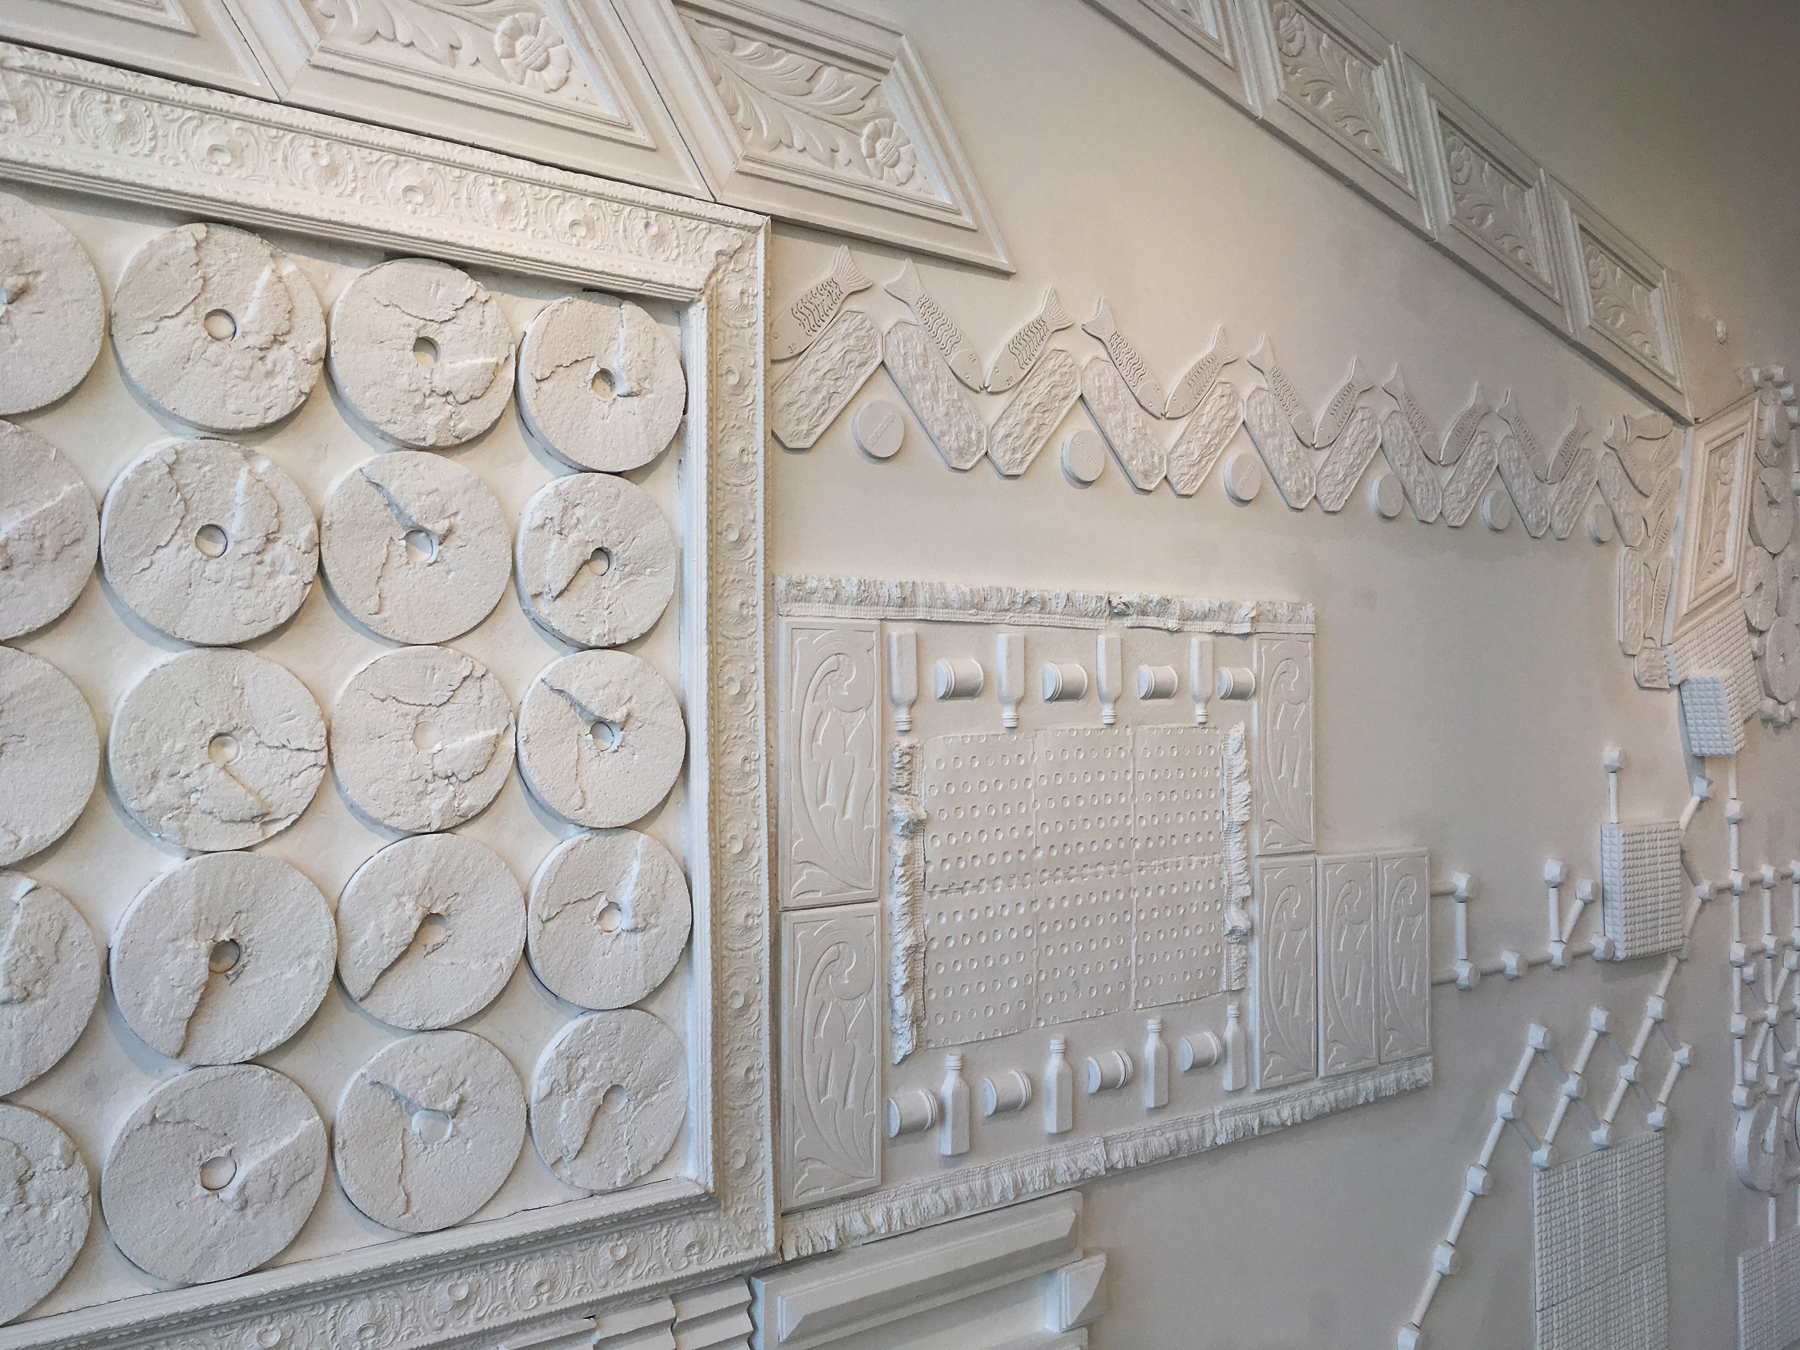 plaster relief sculpture